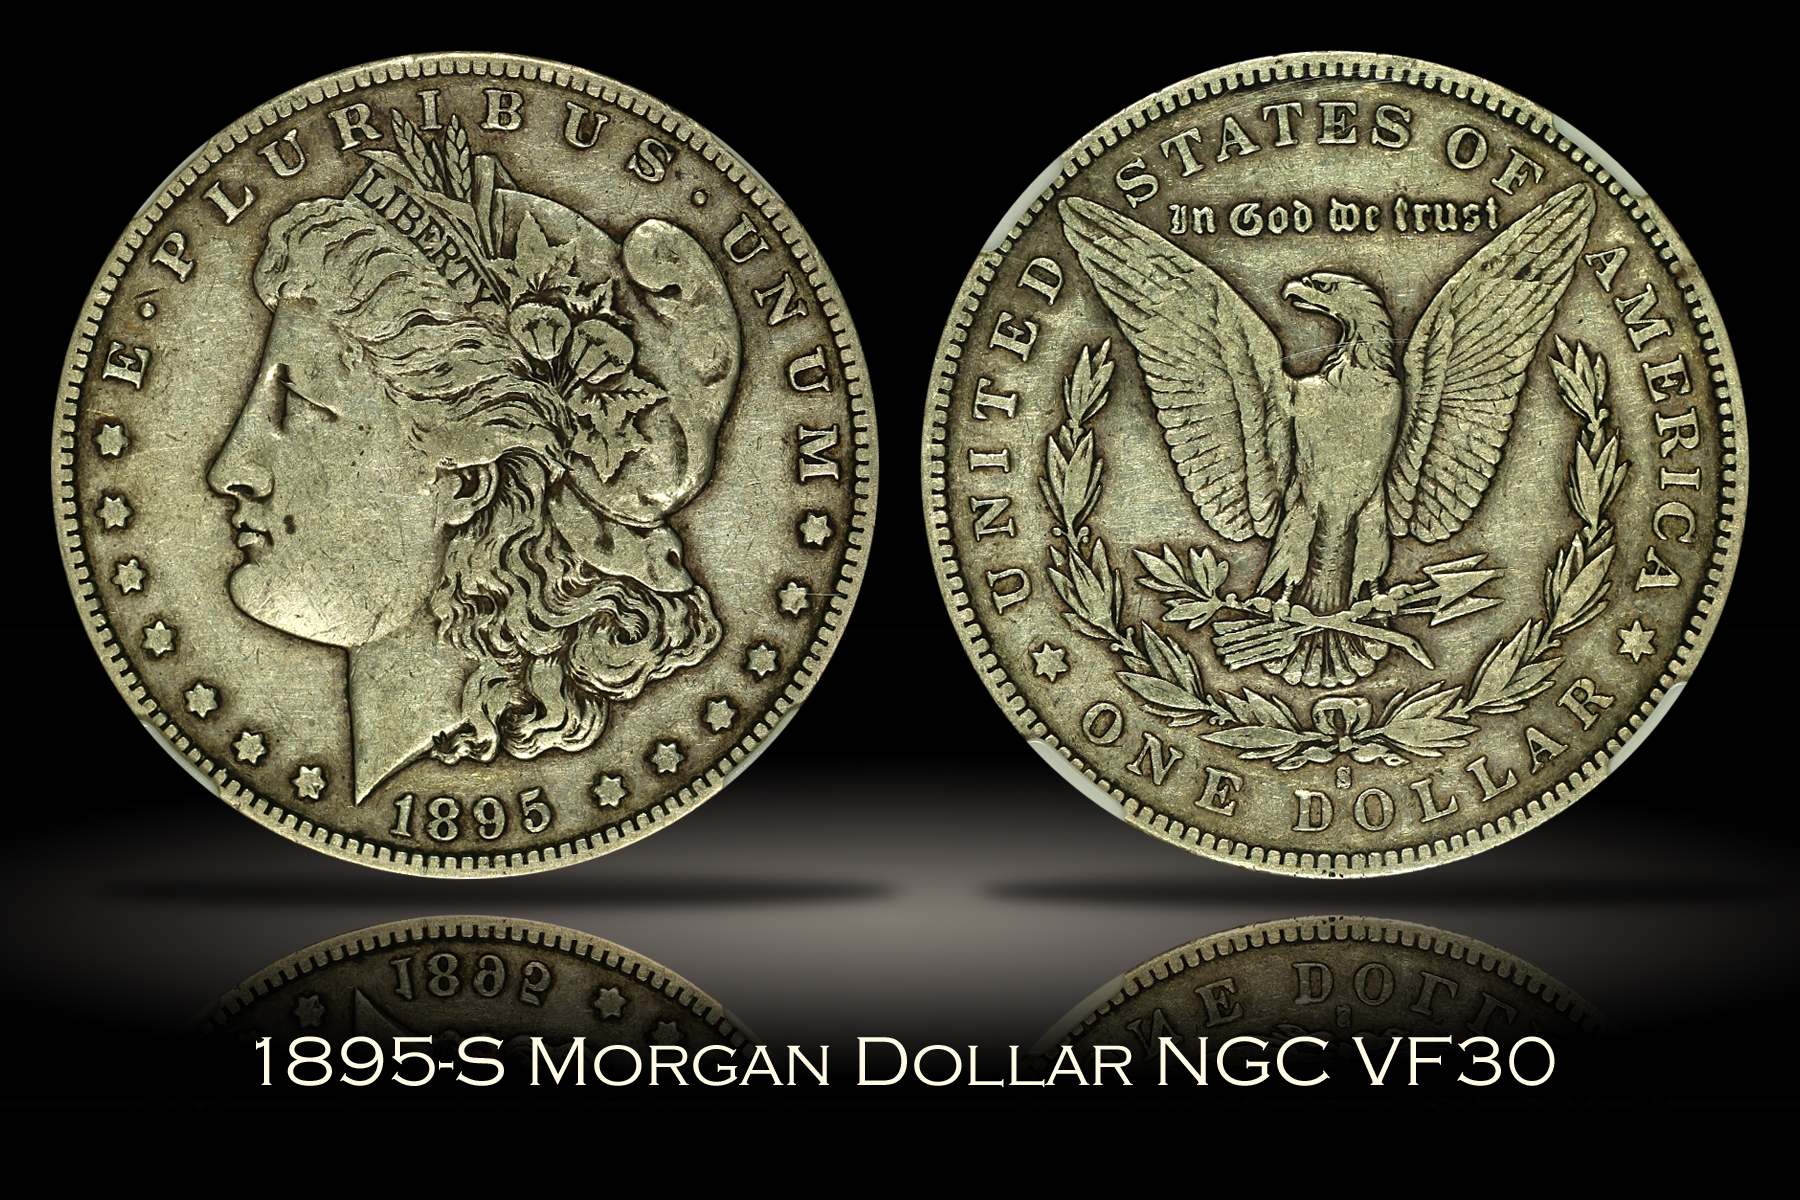 1895-S Morgan Dollar NGC VF30